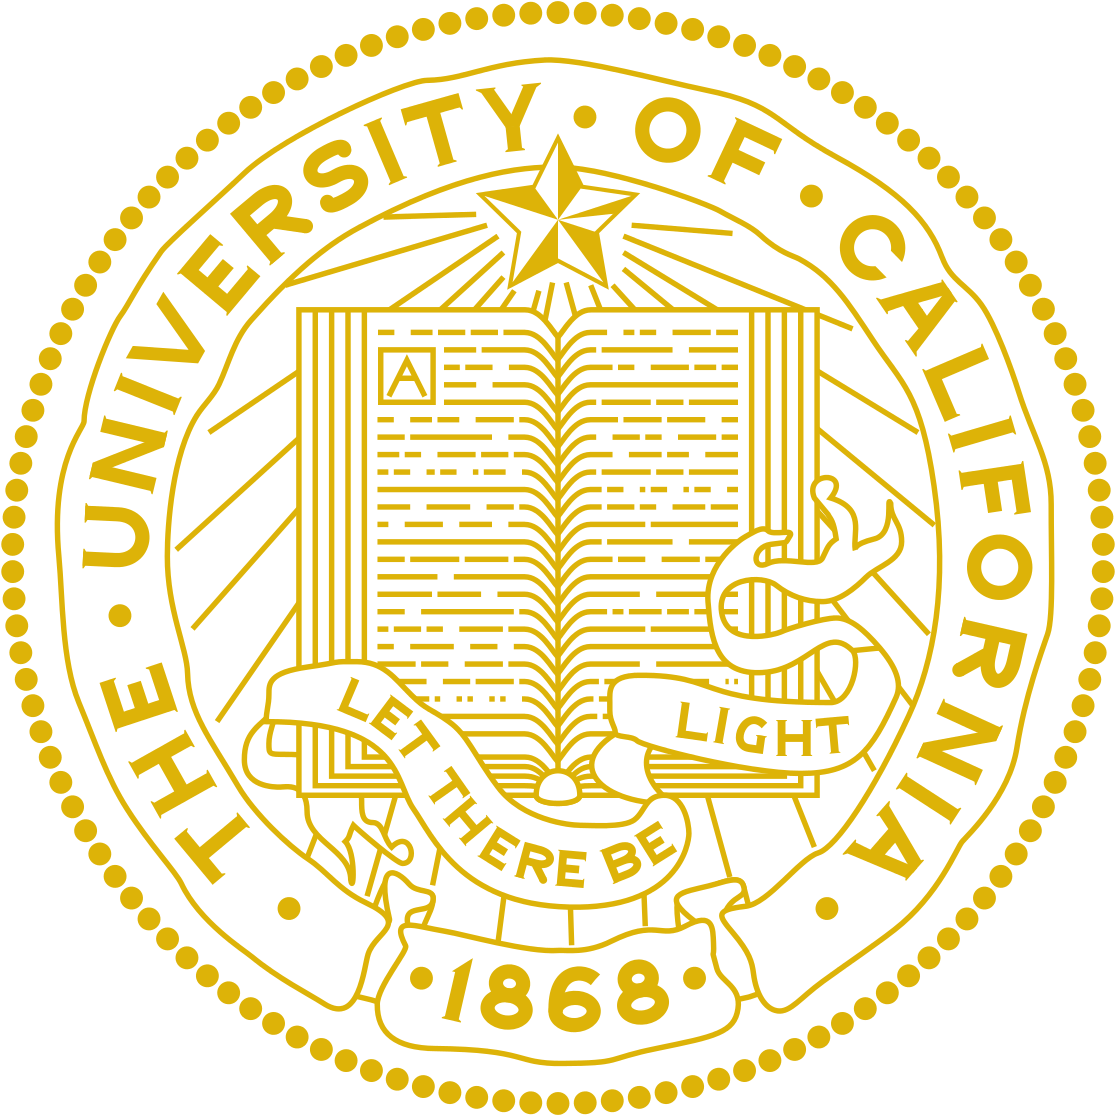 Download University Of California Merced Wikipedia Uc Merced